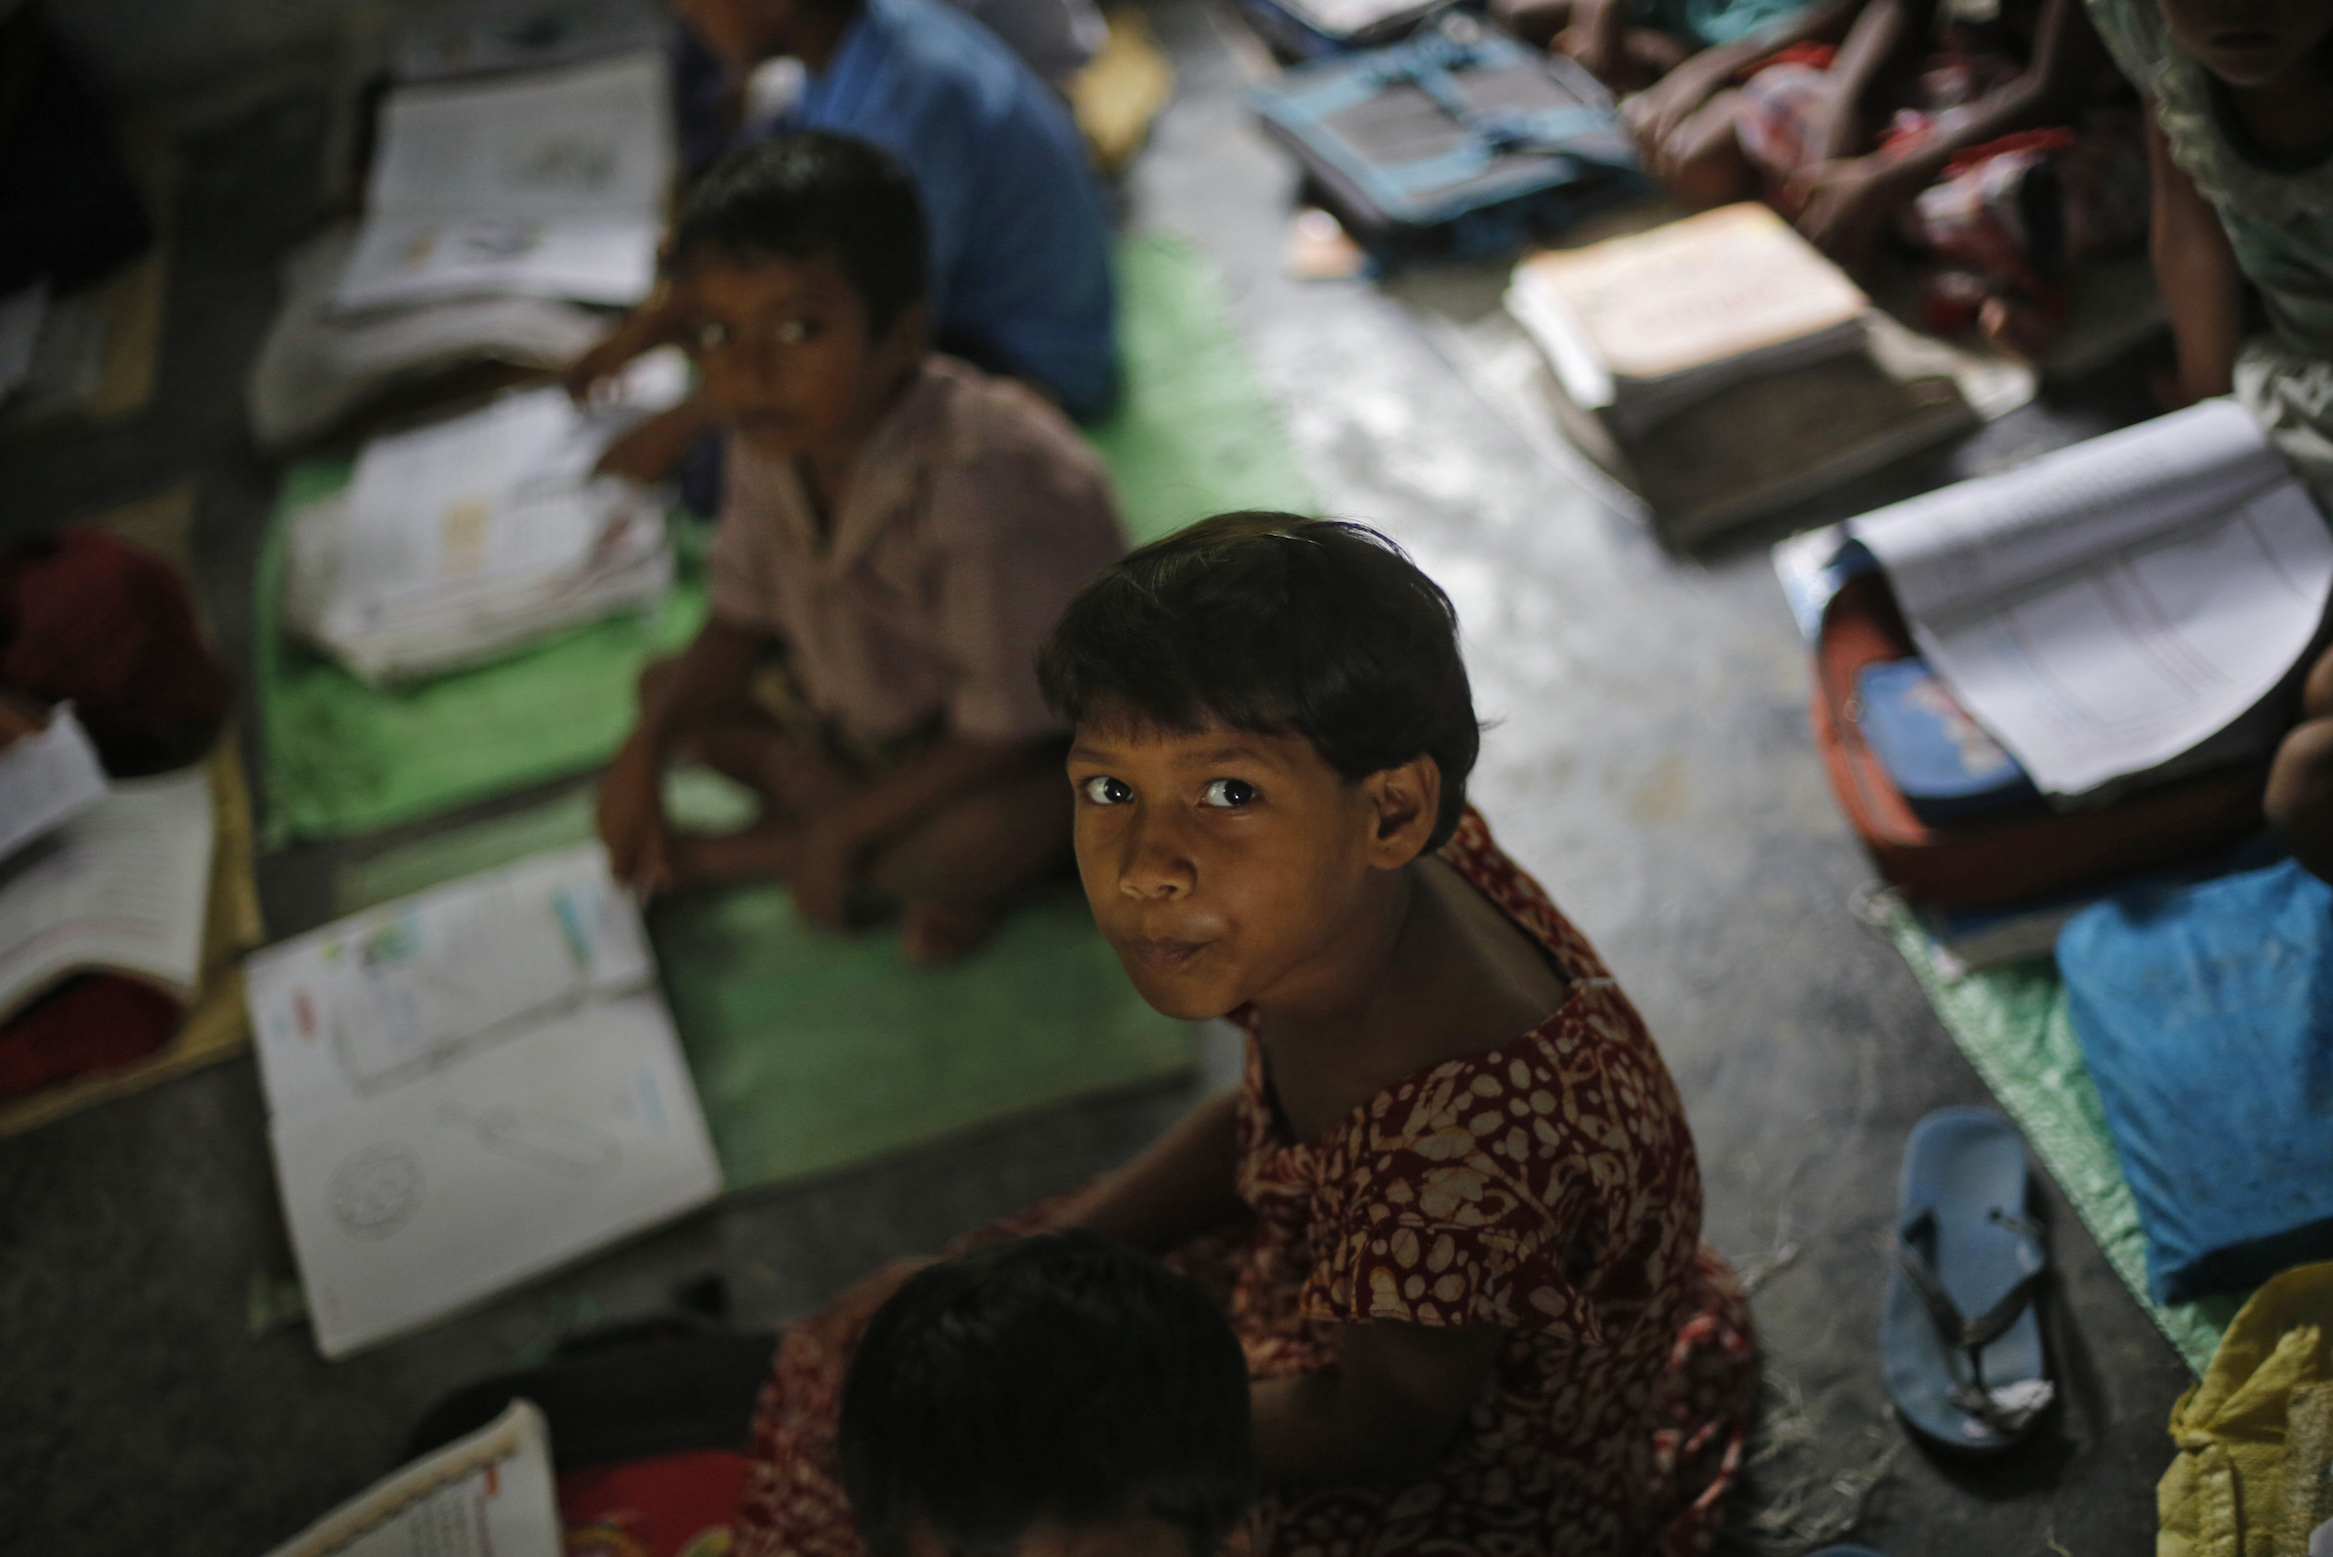 A schoolgirl in a government school in Brahimpur village in Chapra district. Photo Credit: REUTERS/Adnan Abidi